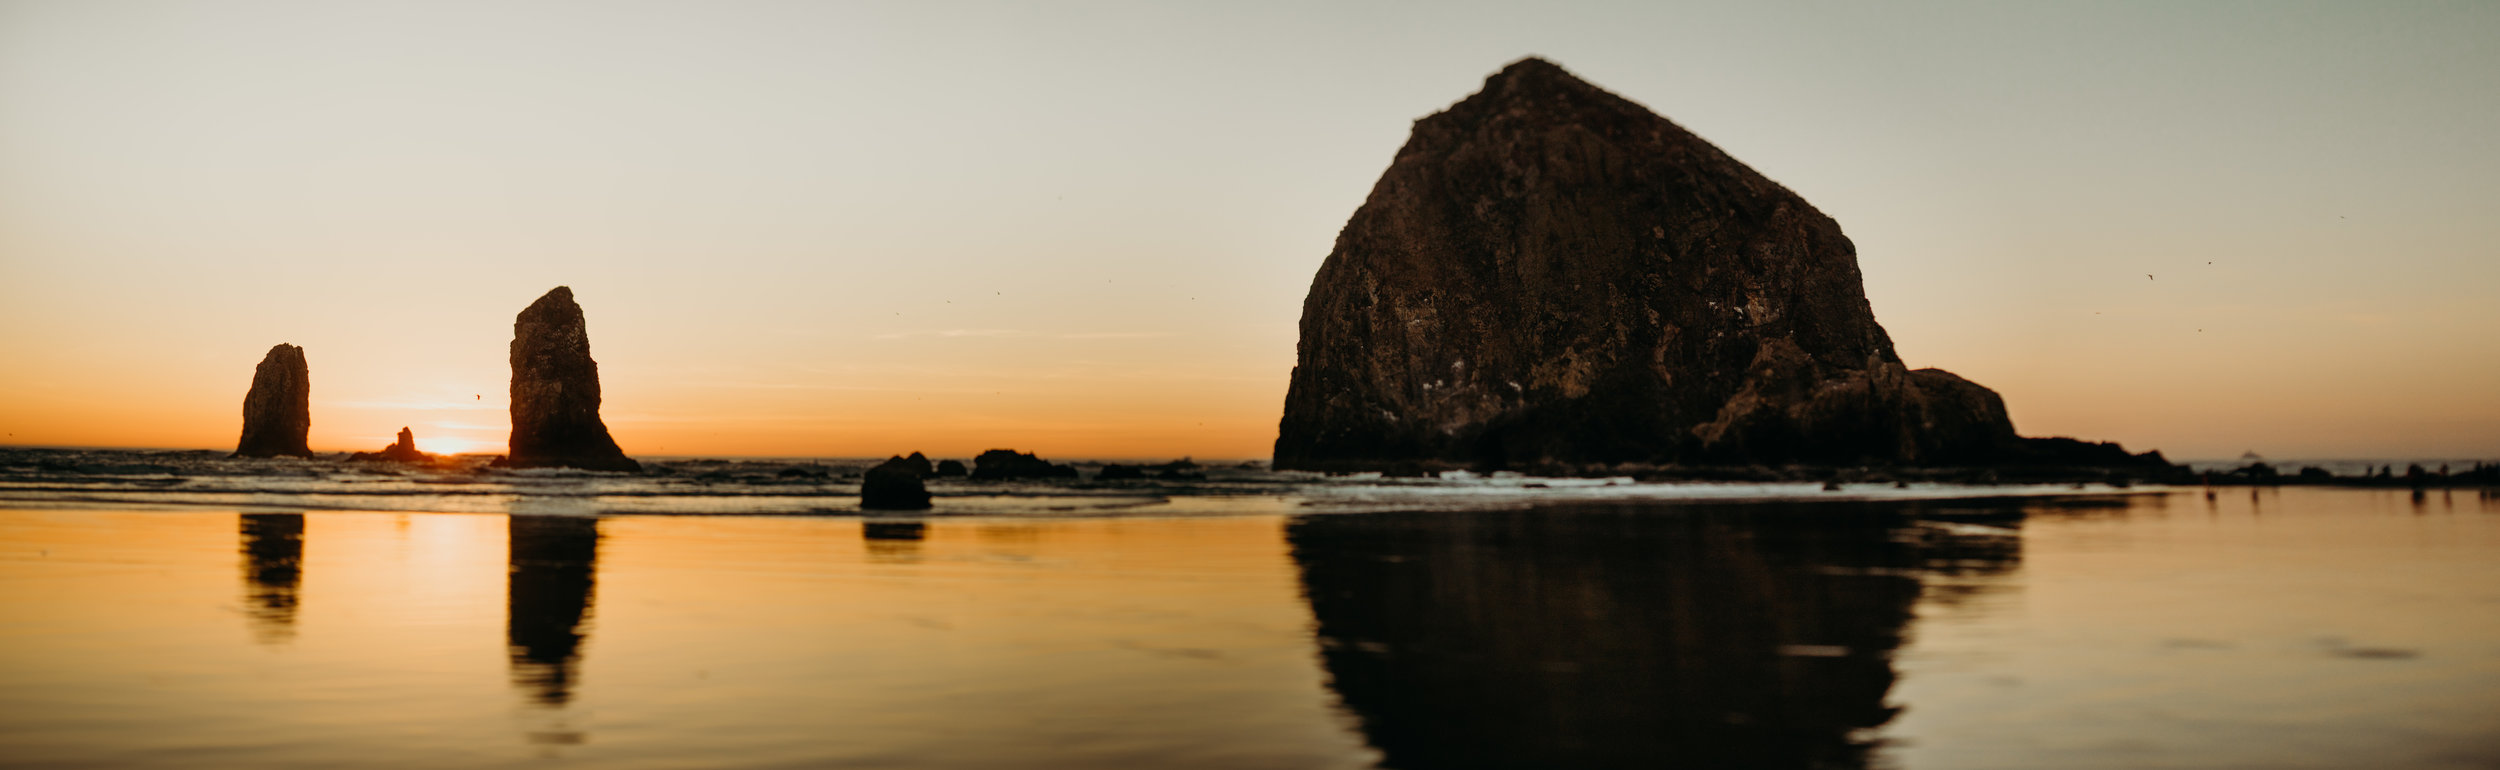 landscape shot of Cannon Beach in Oregon at sunset